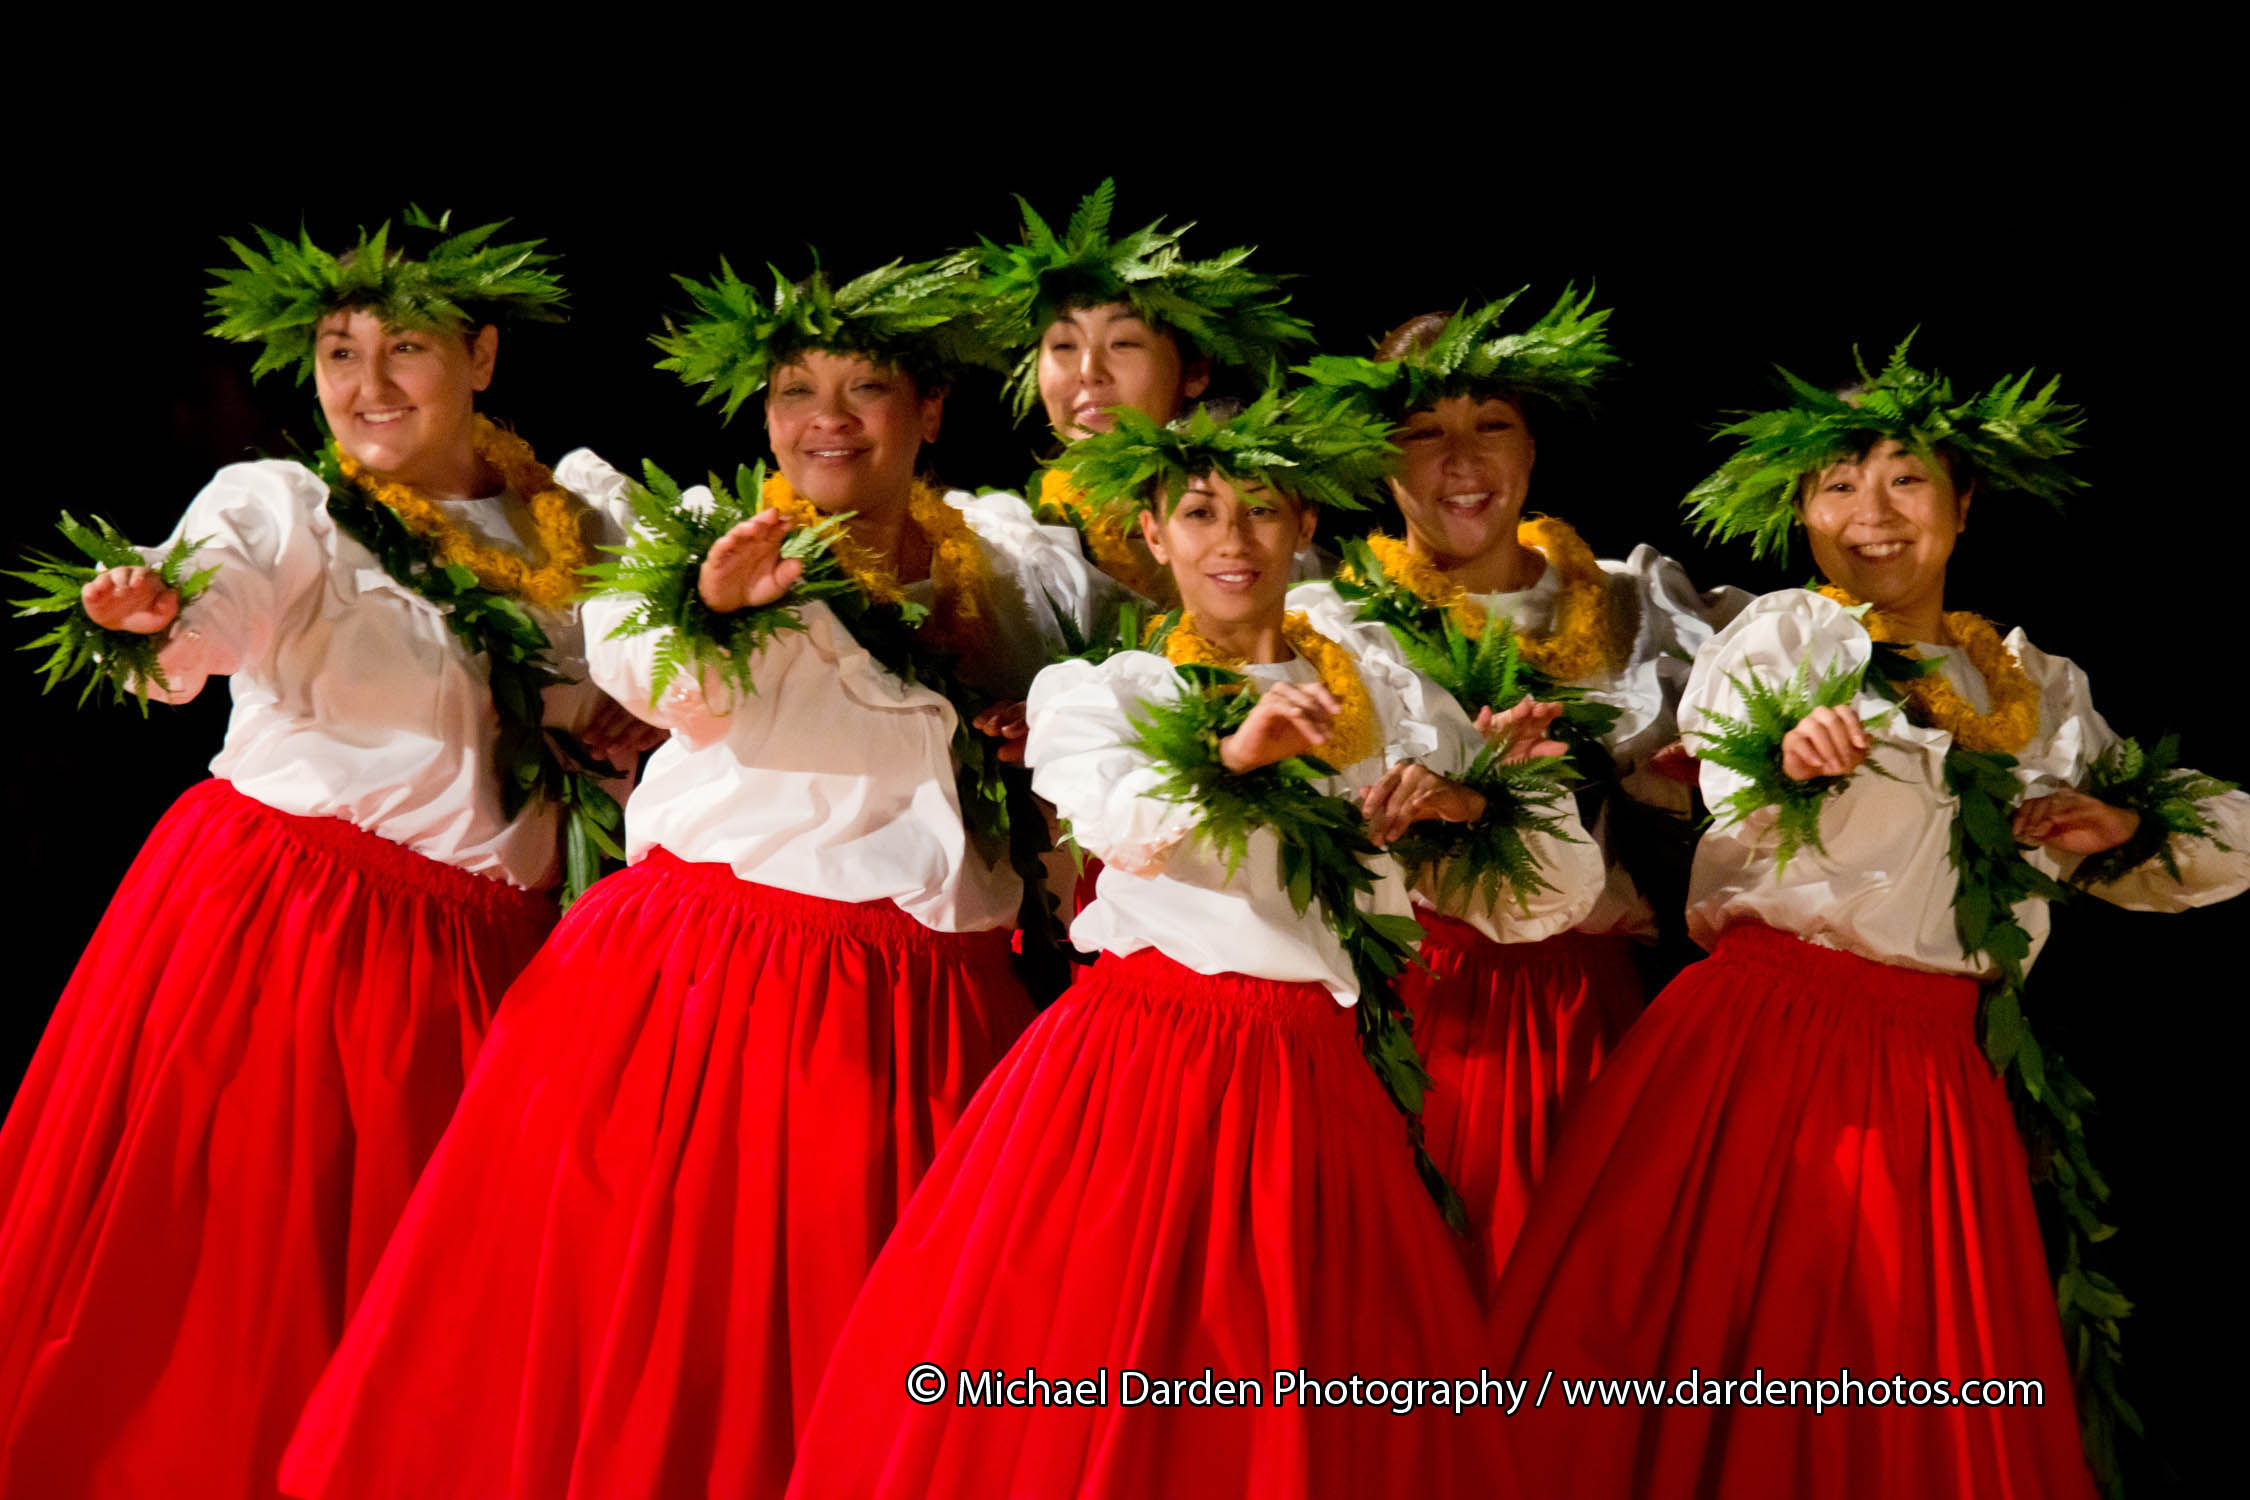 The sixth annual Moku O Keawe International Hula Festival will take place November 3-5, 2011 at Waikoloa Beach Resort on the Big Island's Kohala Coast.  The Festival, presented by Moku O Keawe Foundation, features topnotch women's hālau from Hawai'i, the Mainland USA, and Japan, competing in kahiko, 'auana and kupuna divisions, solo and group.